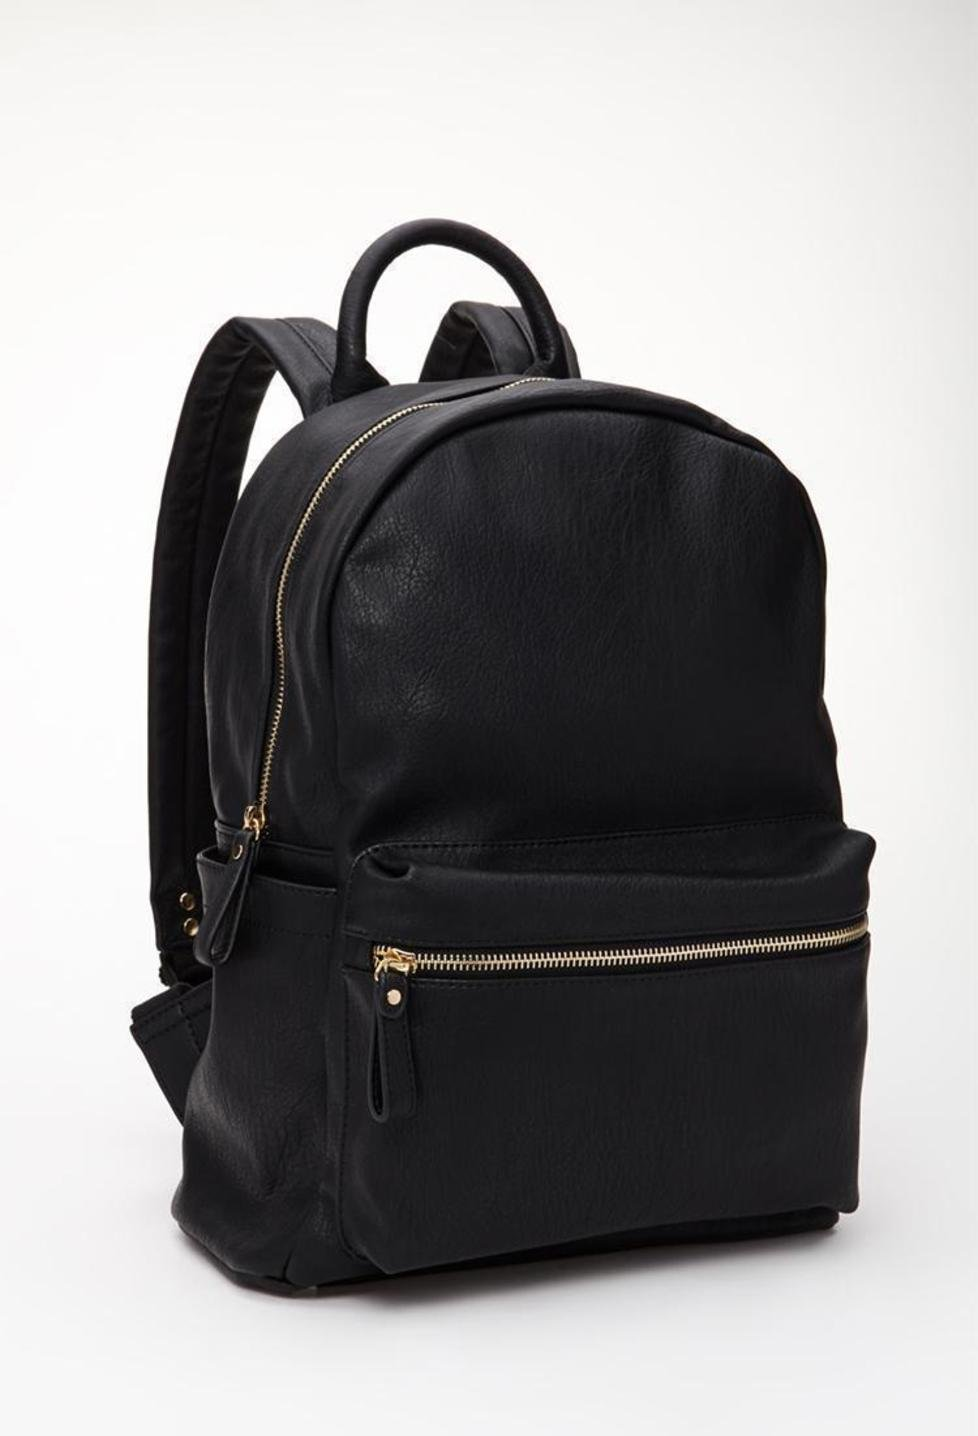 Faux Leather Backpacks RlZZaY8H